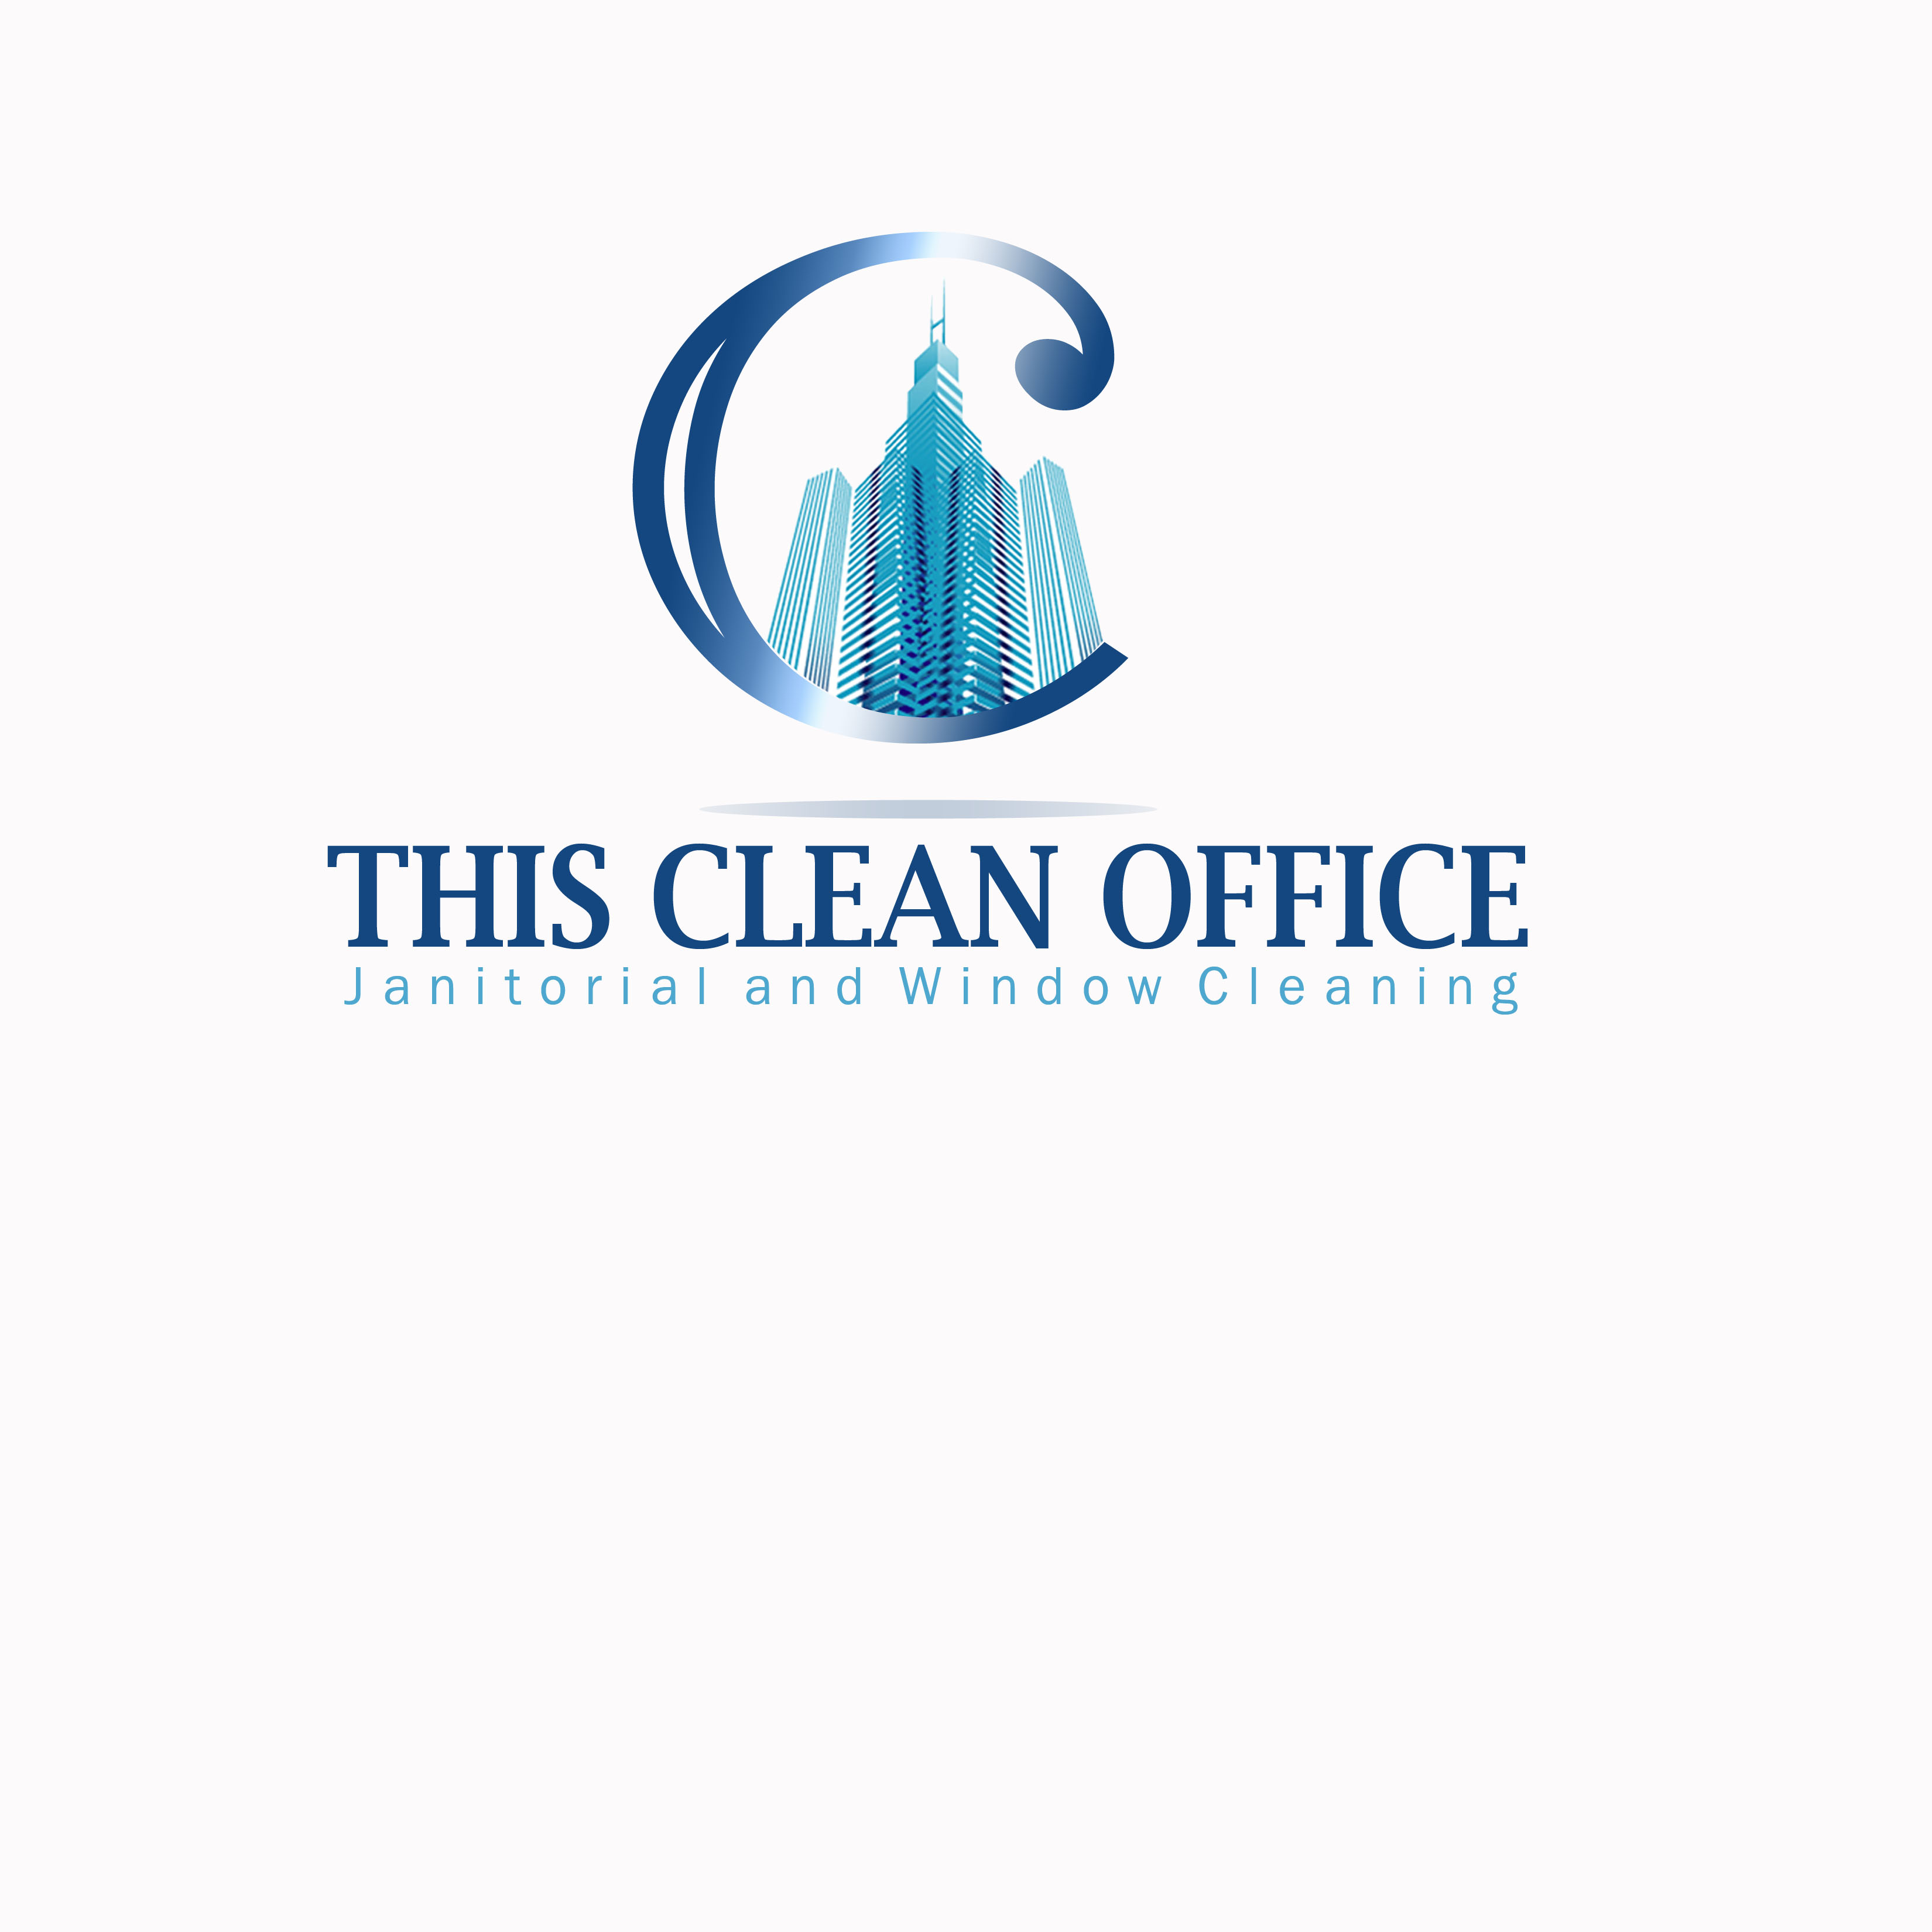 Logo Design by Allan Esclamado - Entry No. 59 in the Logo Design Contest Professional and Unforgettable Logo Design for This Clean Office.